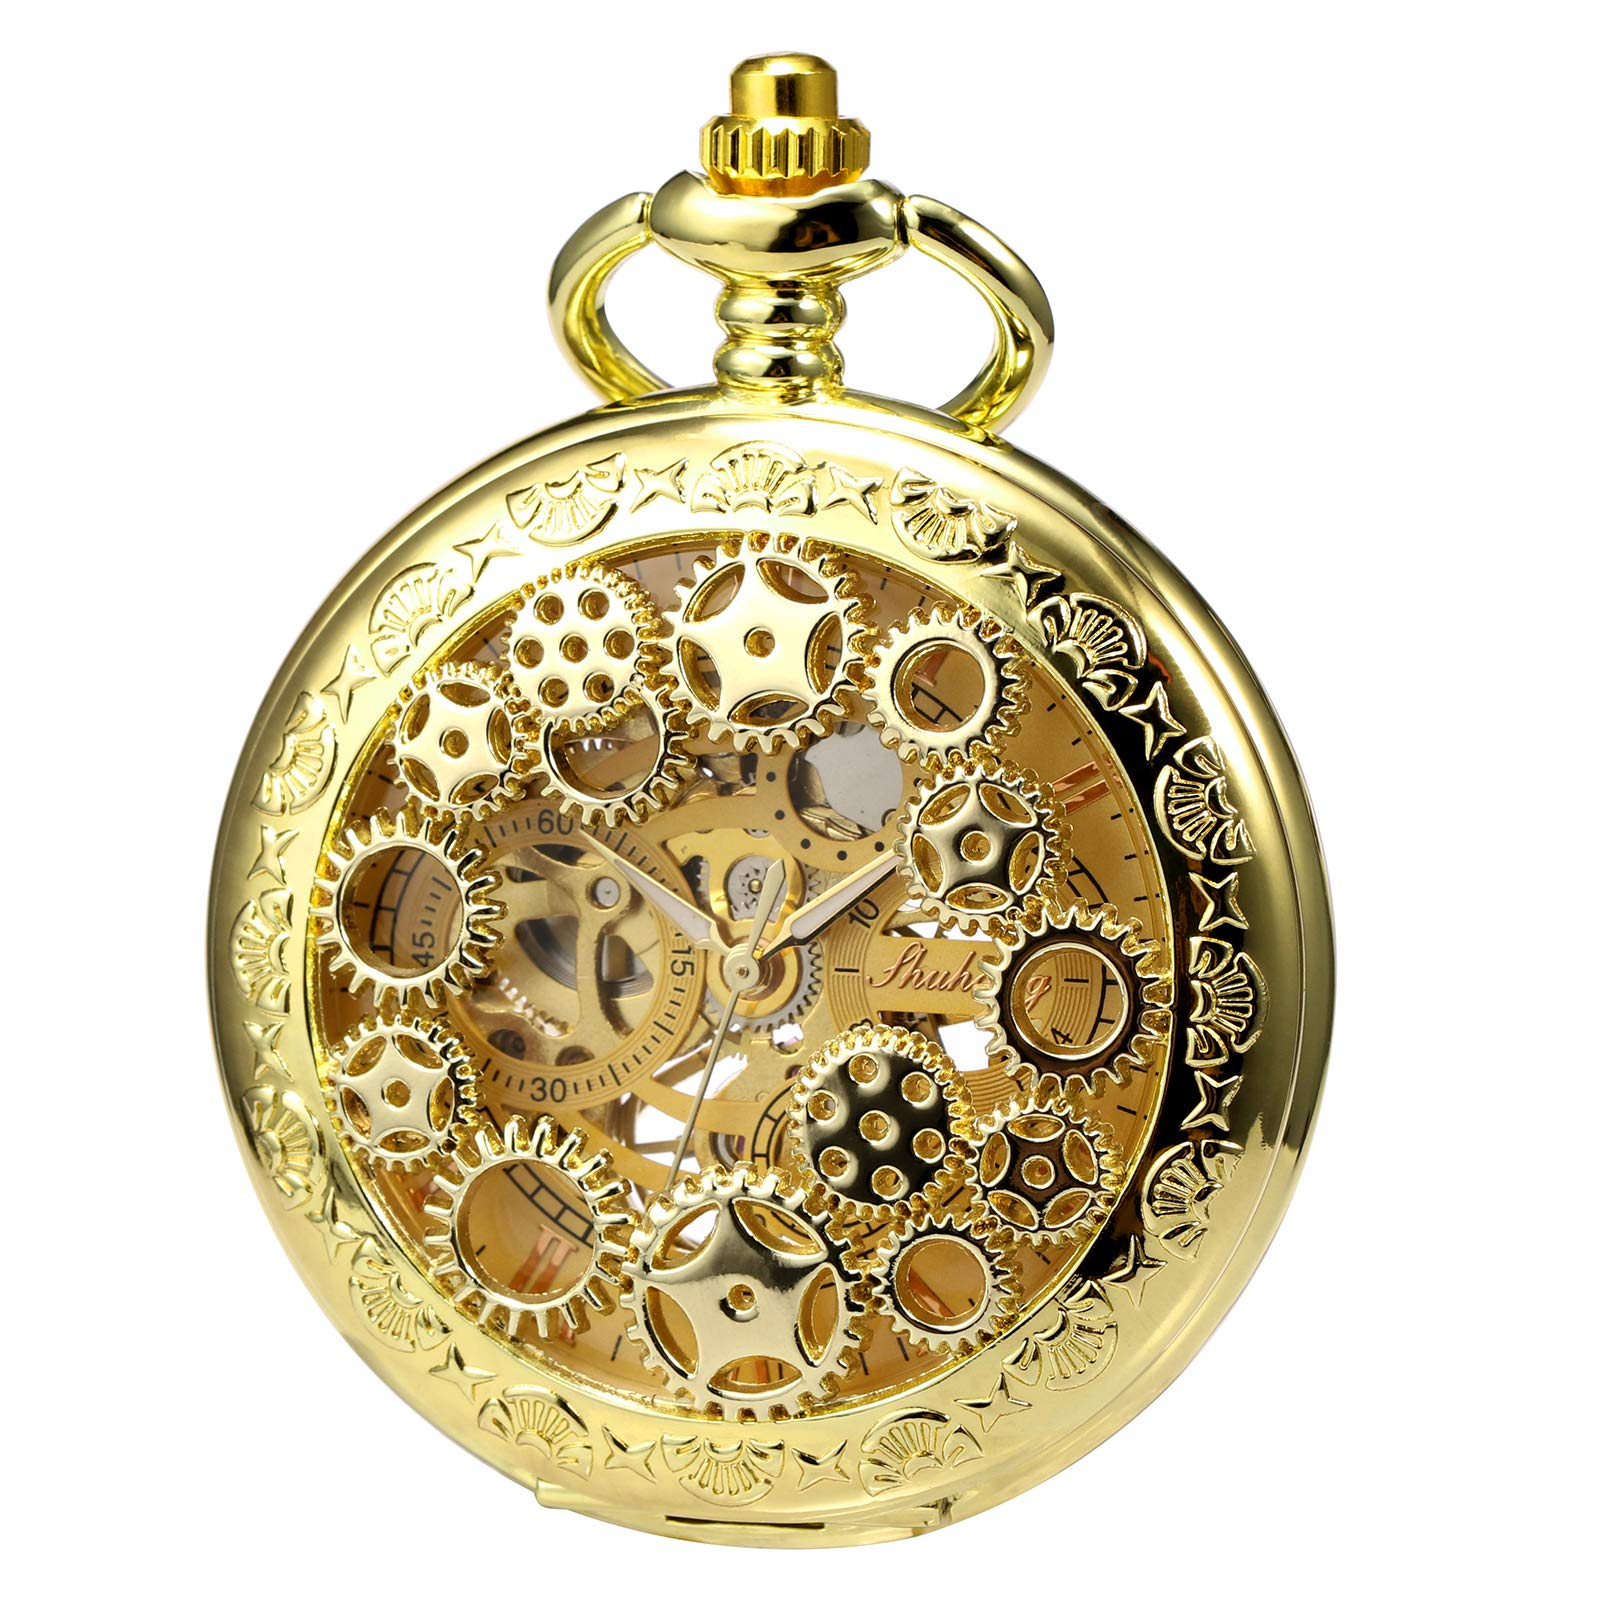 TREEWETO Mens Womens Mechanical Skeleton Pocket Watch Golden Gear Hollow Case Steampunk Blue Hands Fob Watches with Chain Box by TREEWETO